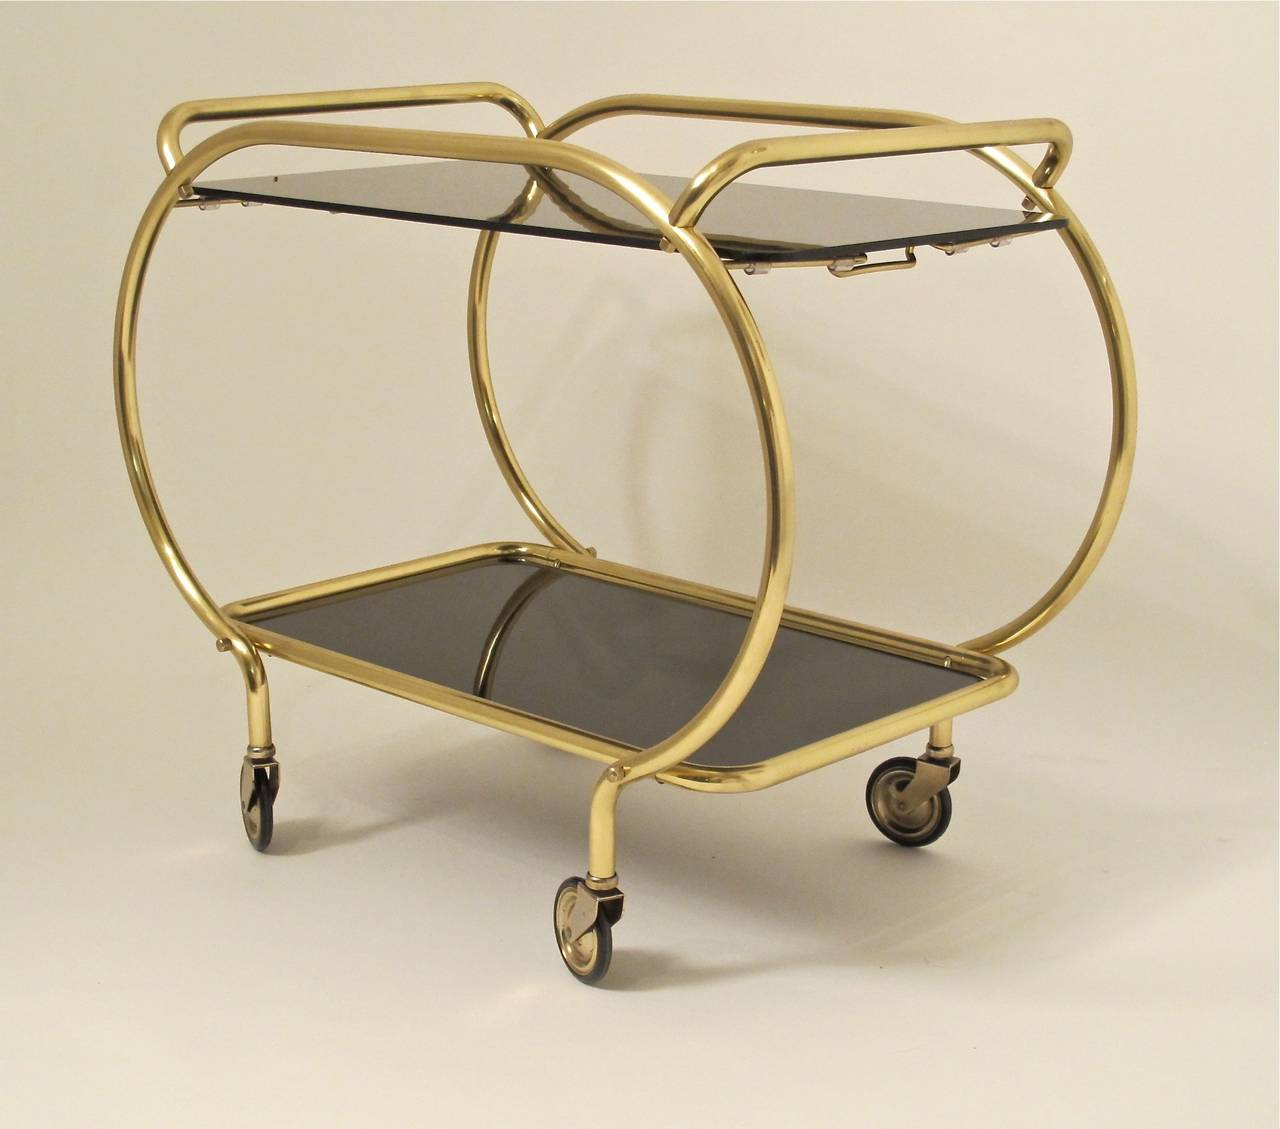 Art Deco Style Bar Cart In Excellent Condition For Sale In San Francisco, CA